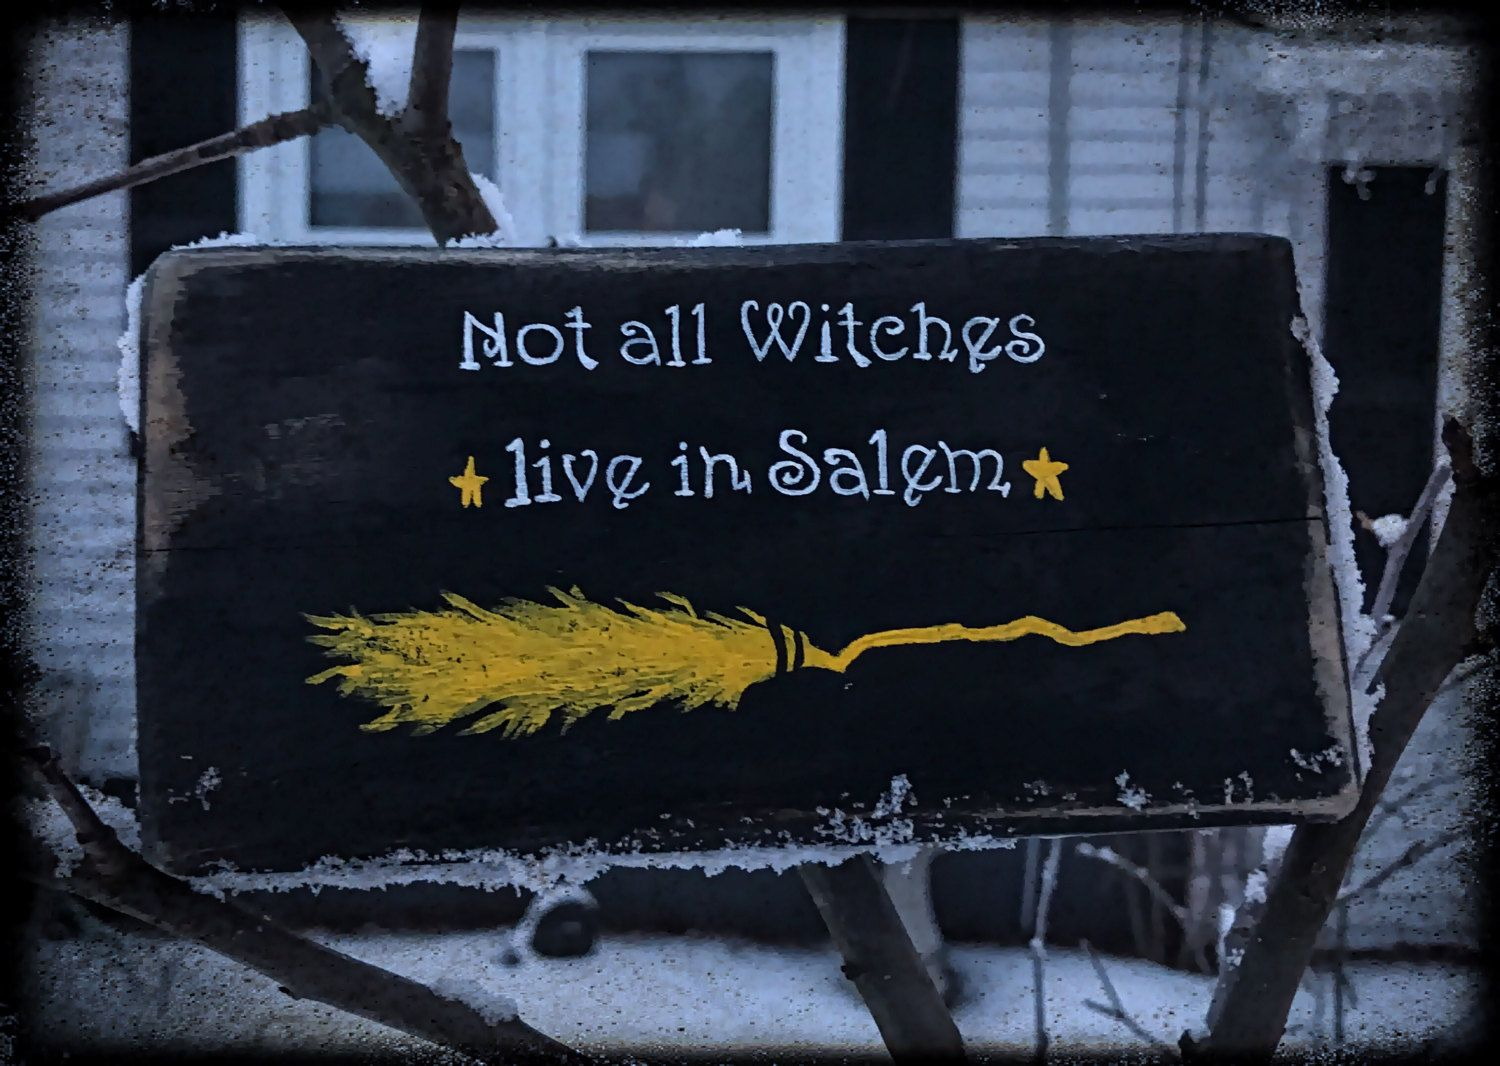 Halloween Decor, witch decor, Halloween witch decor, Halloween sign - Witch Decorations For Halloween